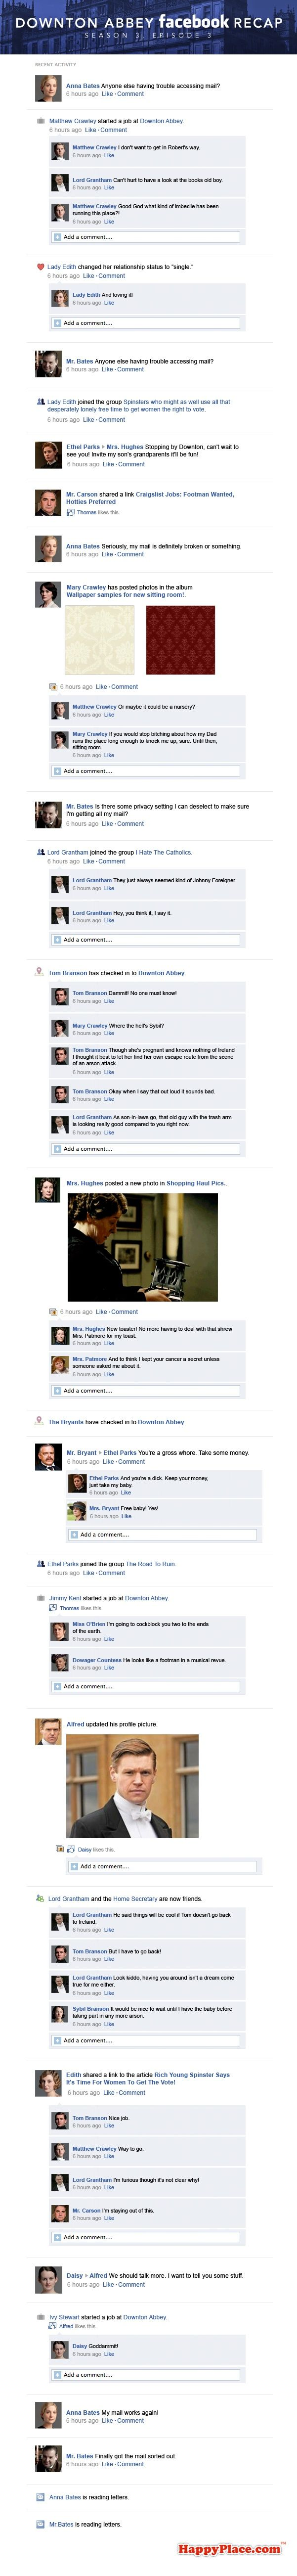 If+Downton+Abbey+took+place+entirely+on+Facebook:+Season+3,+Episode+3.